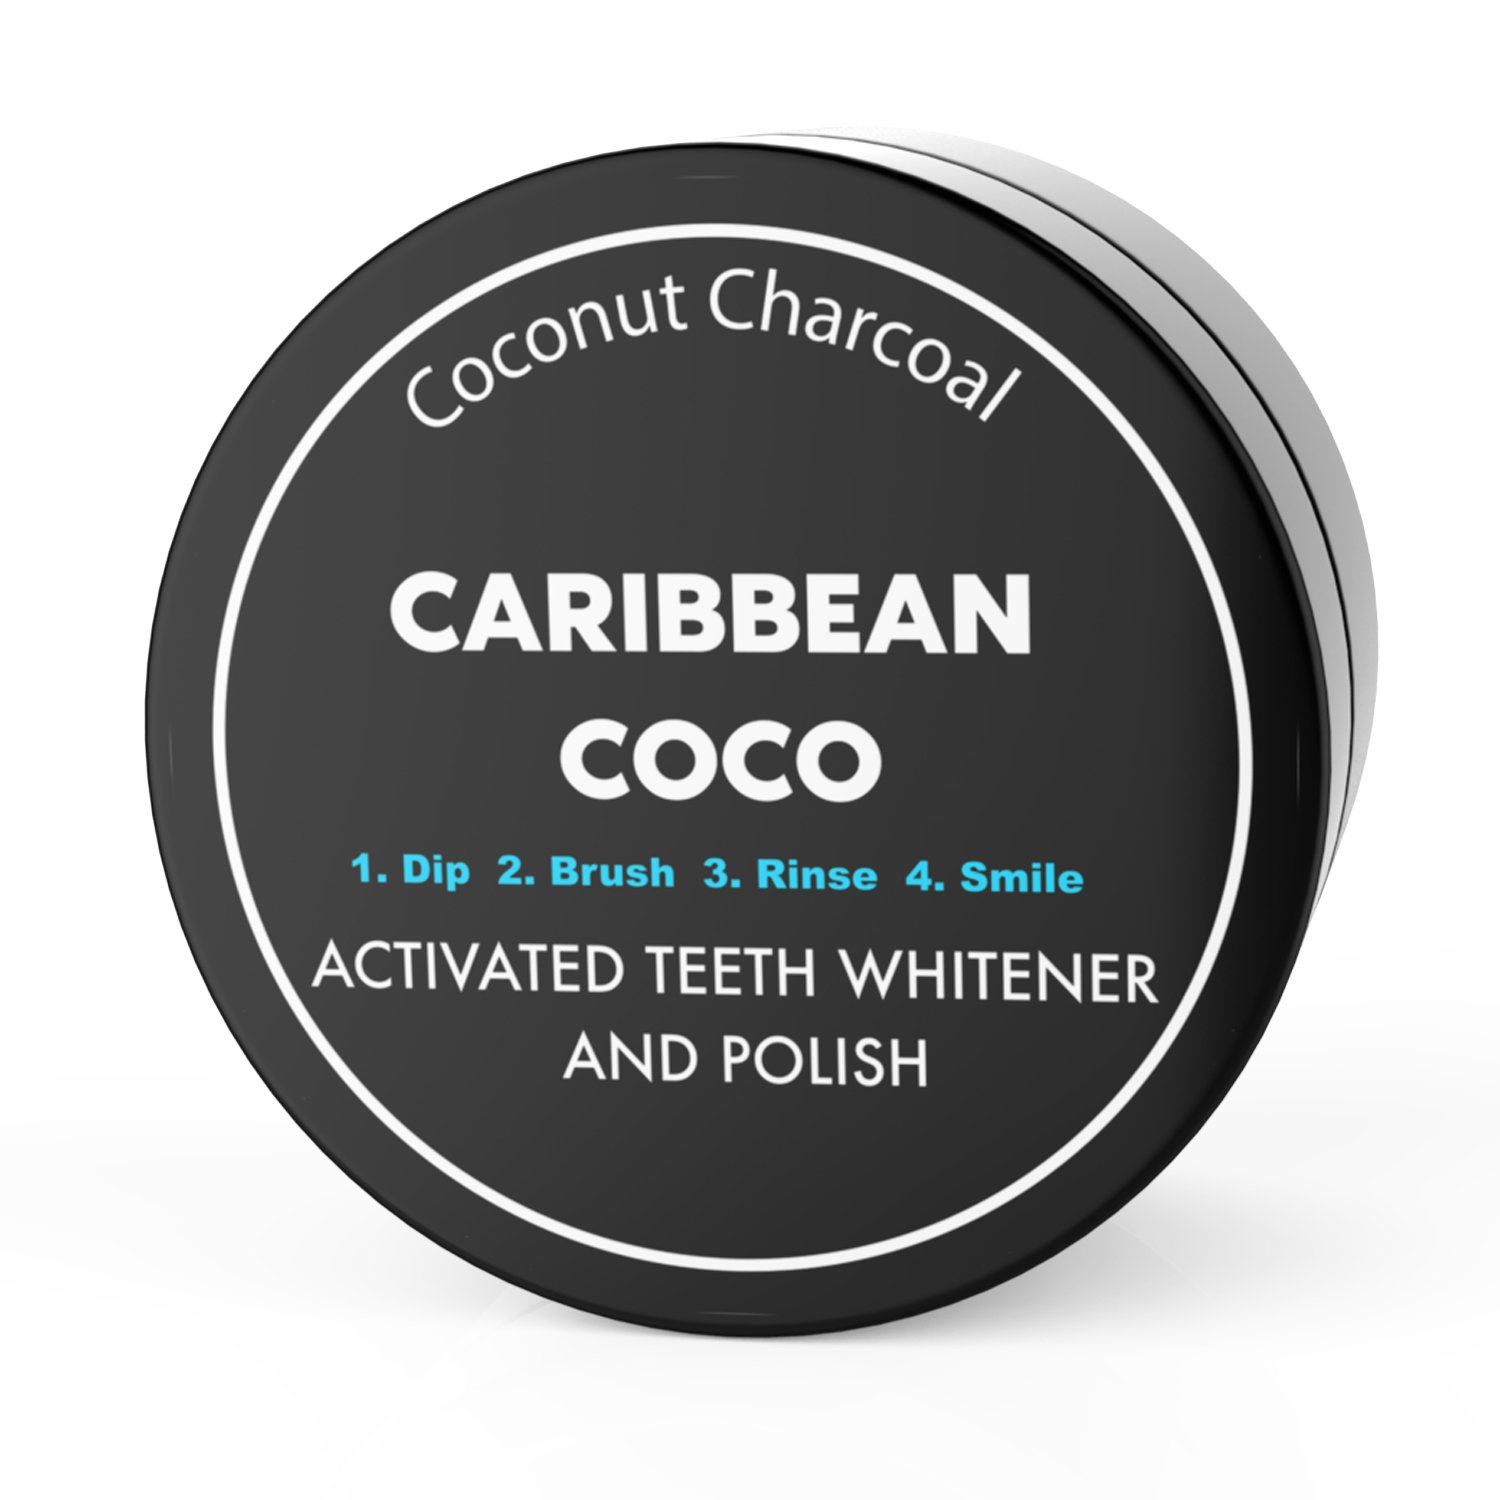 Caribbean Coco - Coconut Carbon Charcoal - Organic Teeth Polishing Charcoal Toothpaste & Mouth Detoxifier